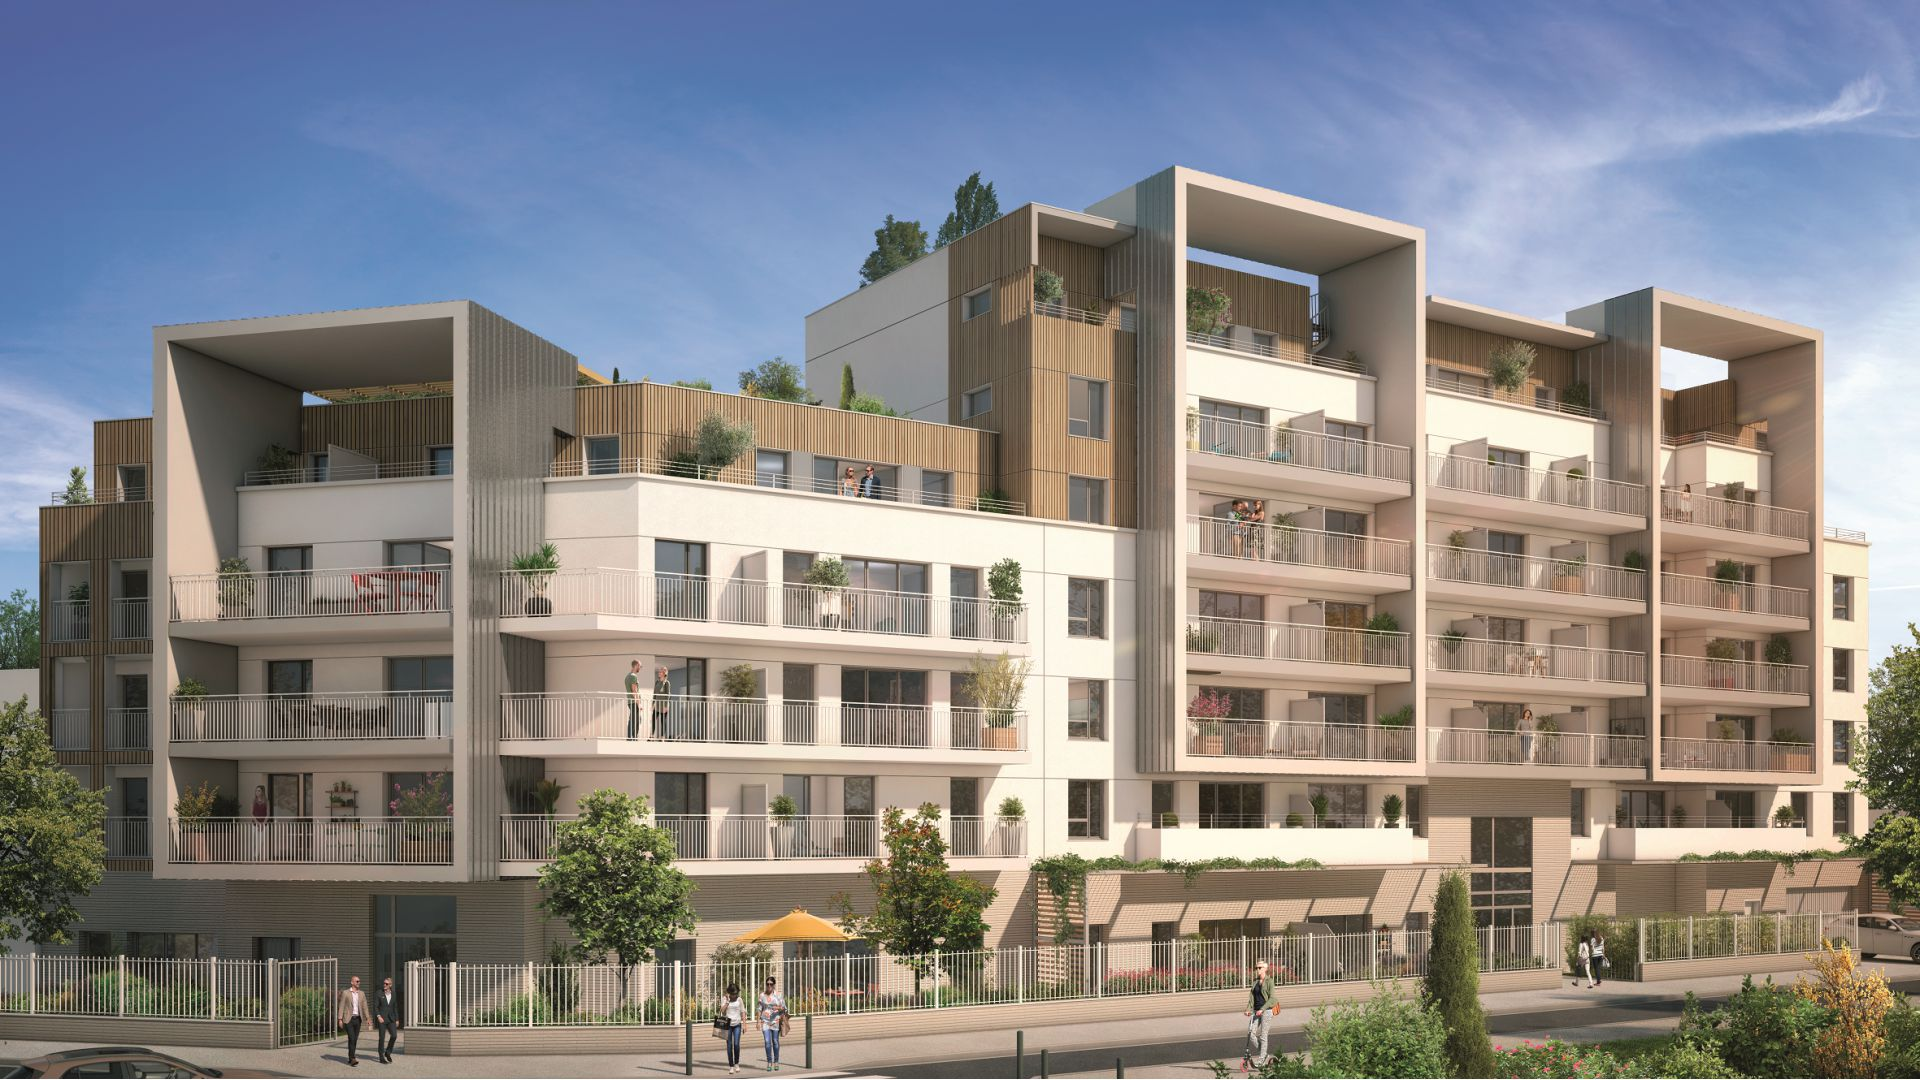 GreenCity immobilier - Champigny sur Marne - 94500 - residence le belvedere - immobilier neuf du T1Bis au T4